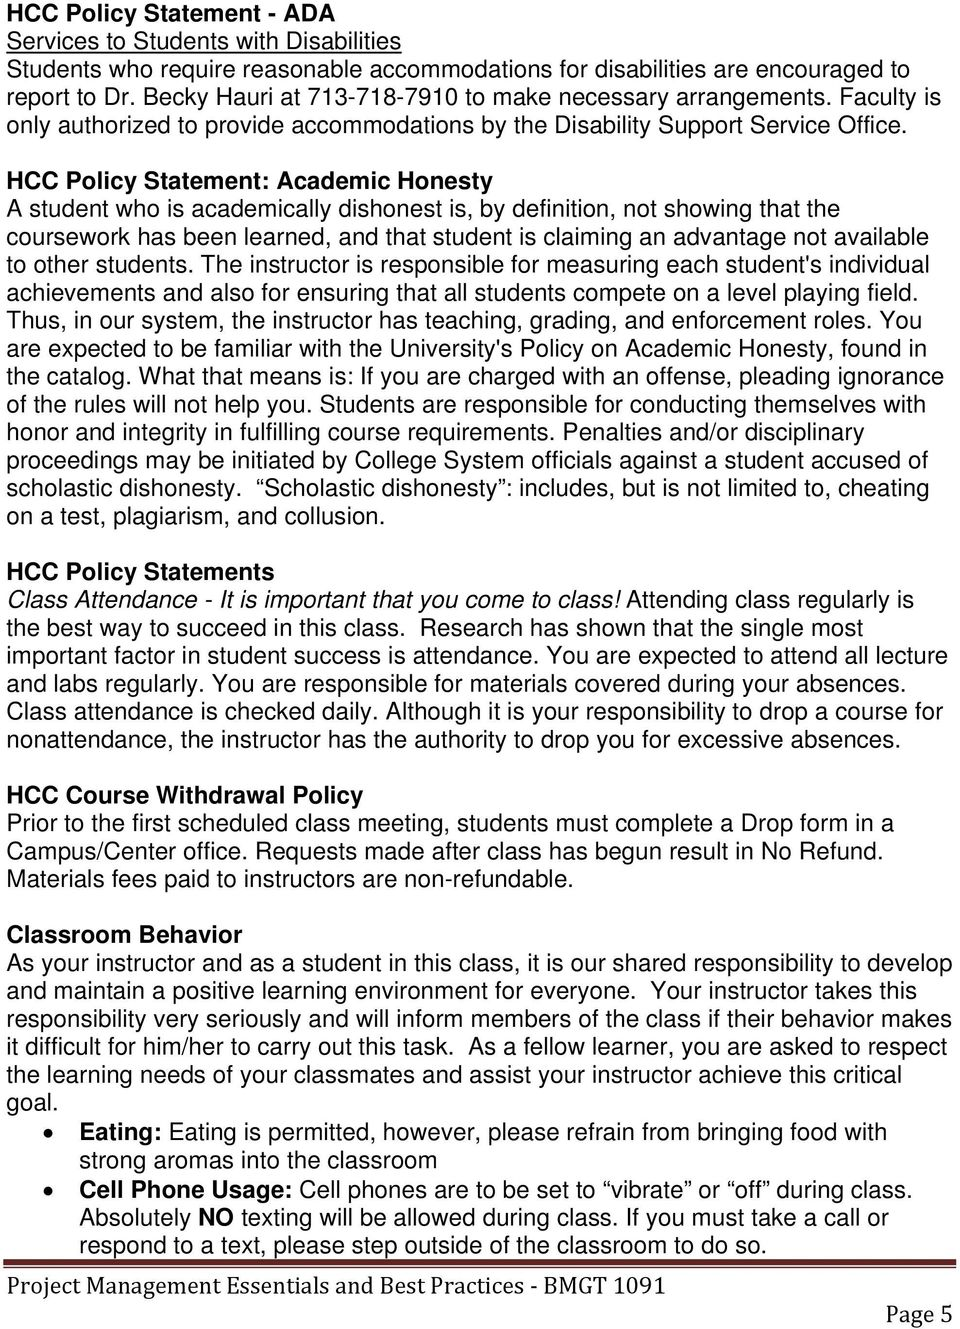 HCC Policy Statement: Academic Honesty A student who is academically dishonest is, by definition, not showing that the coursework has been learned, and that student is claiming an advantage not